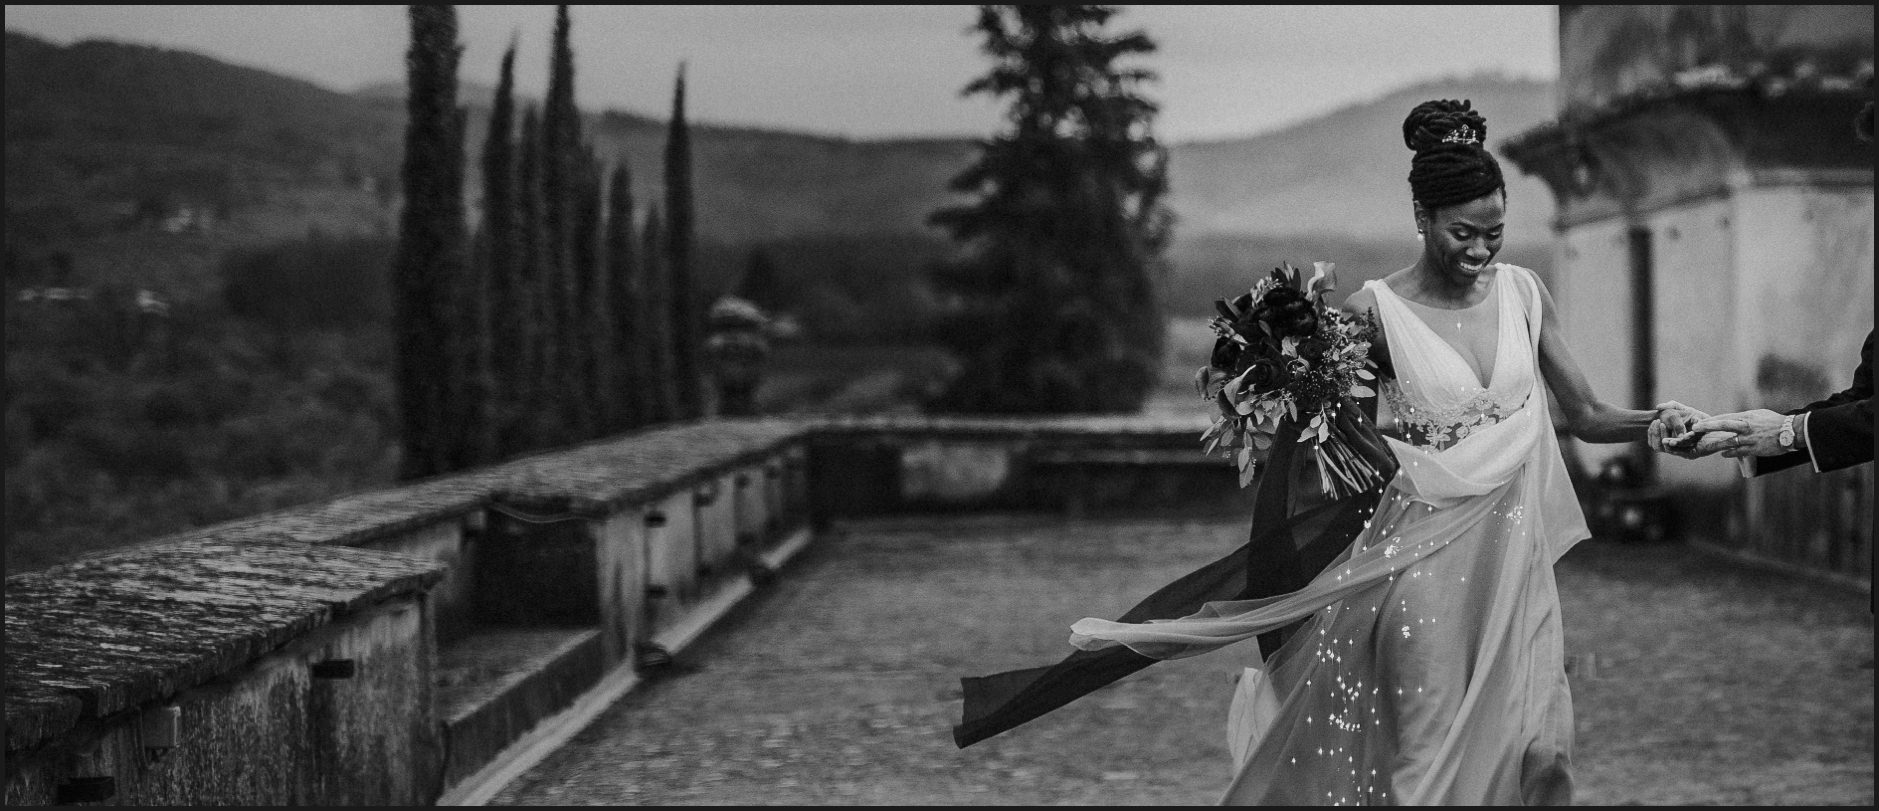 bride, black and white, wedding, villa medicea di lilliano, wind